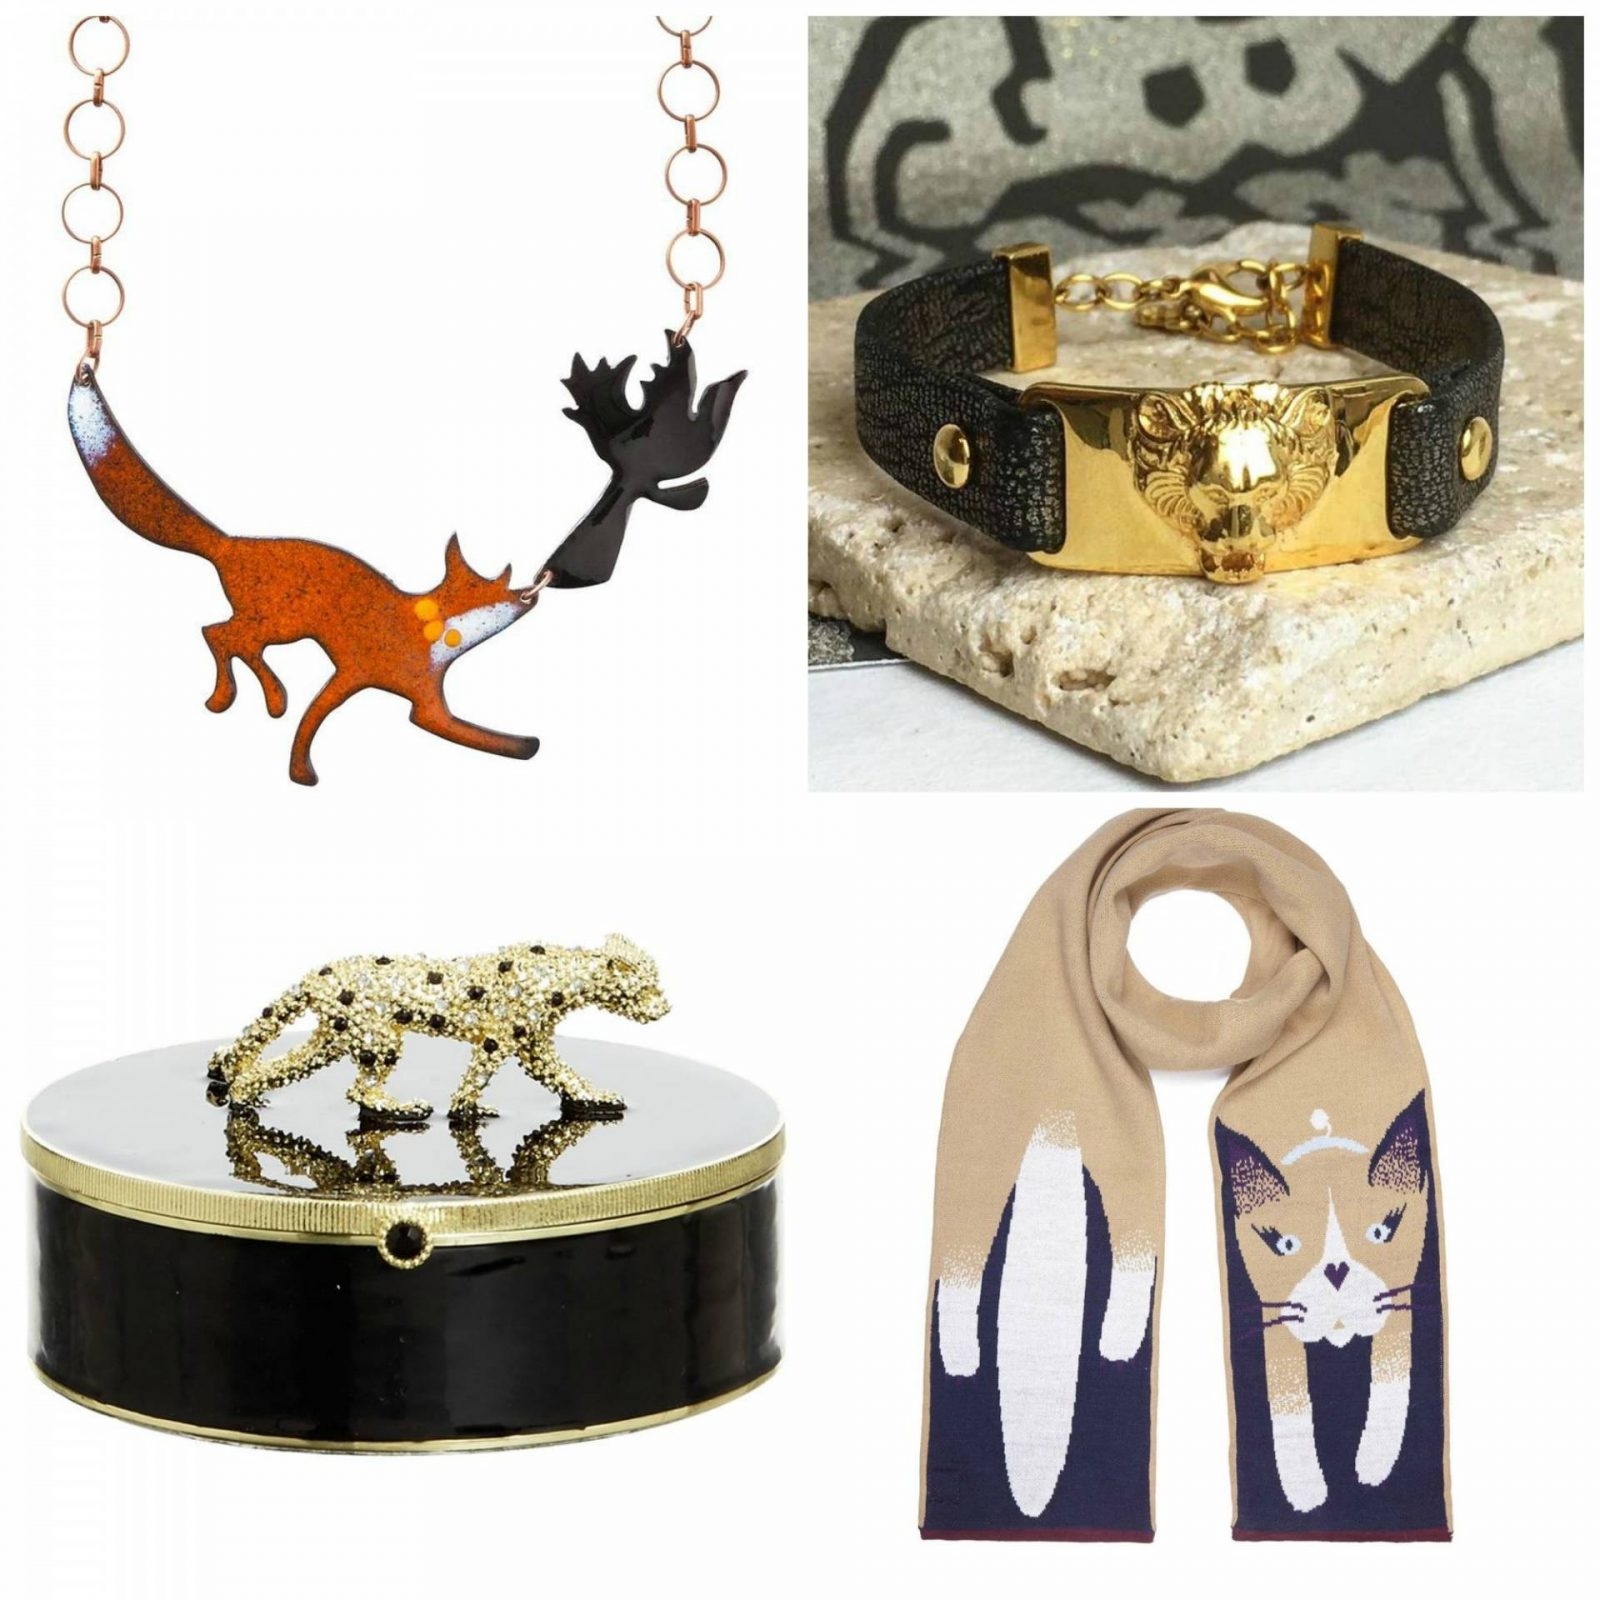 Mother's Day Gift Ideas Inspired by Nature